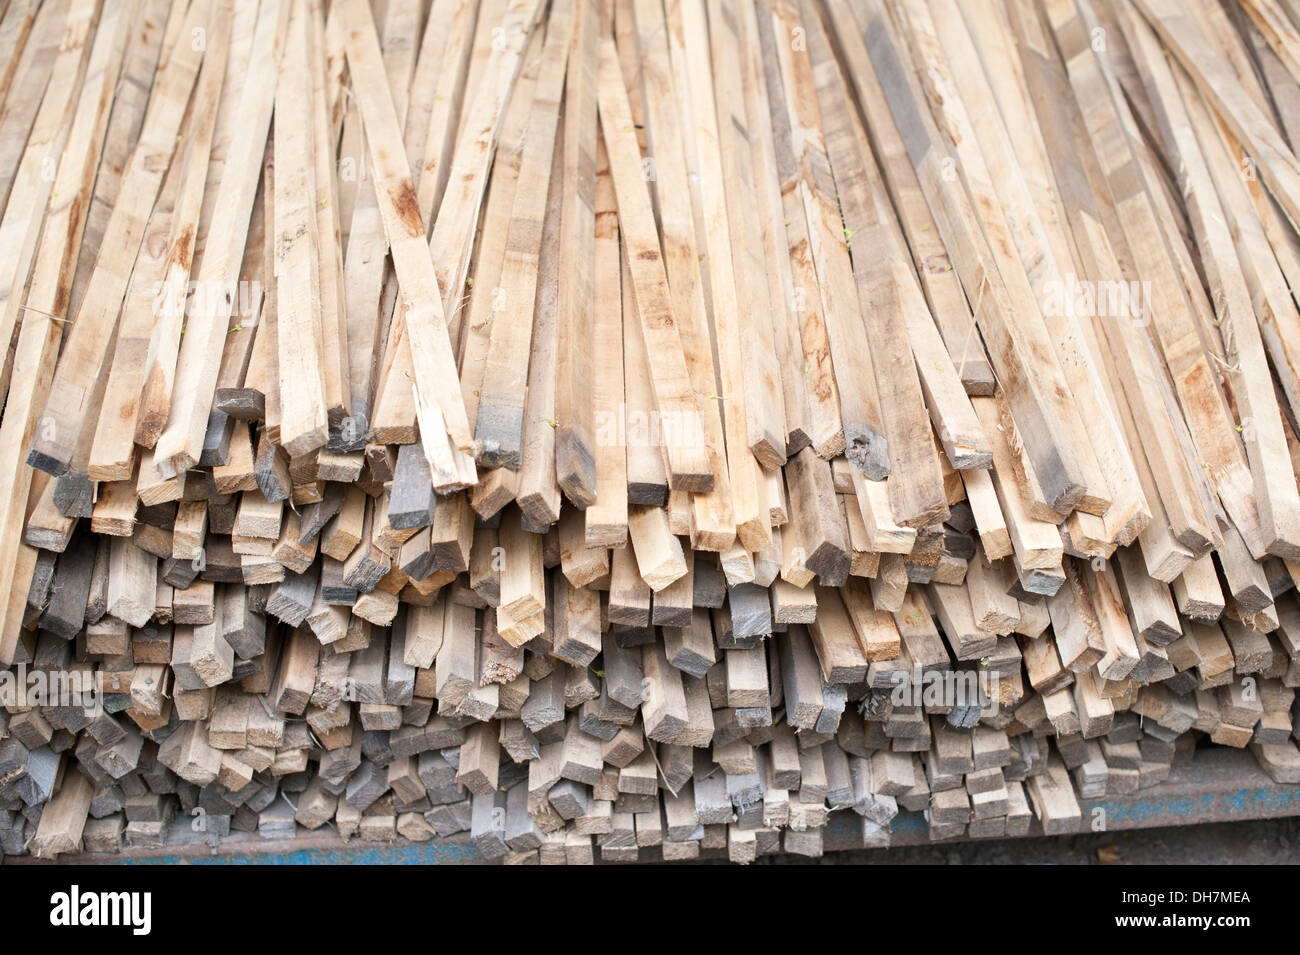 Timber Wood lots of sawn cut long square lengths - Stock Image